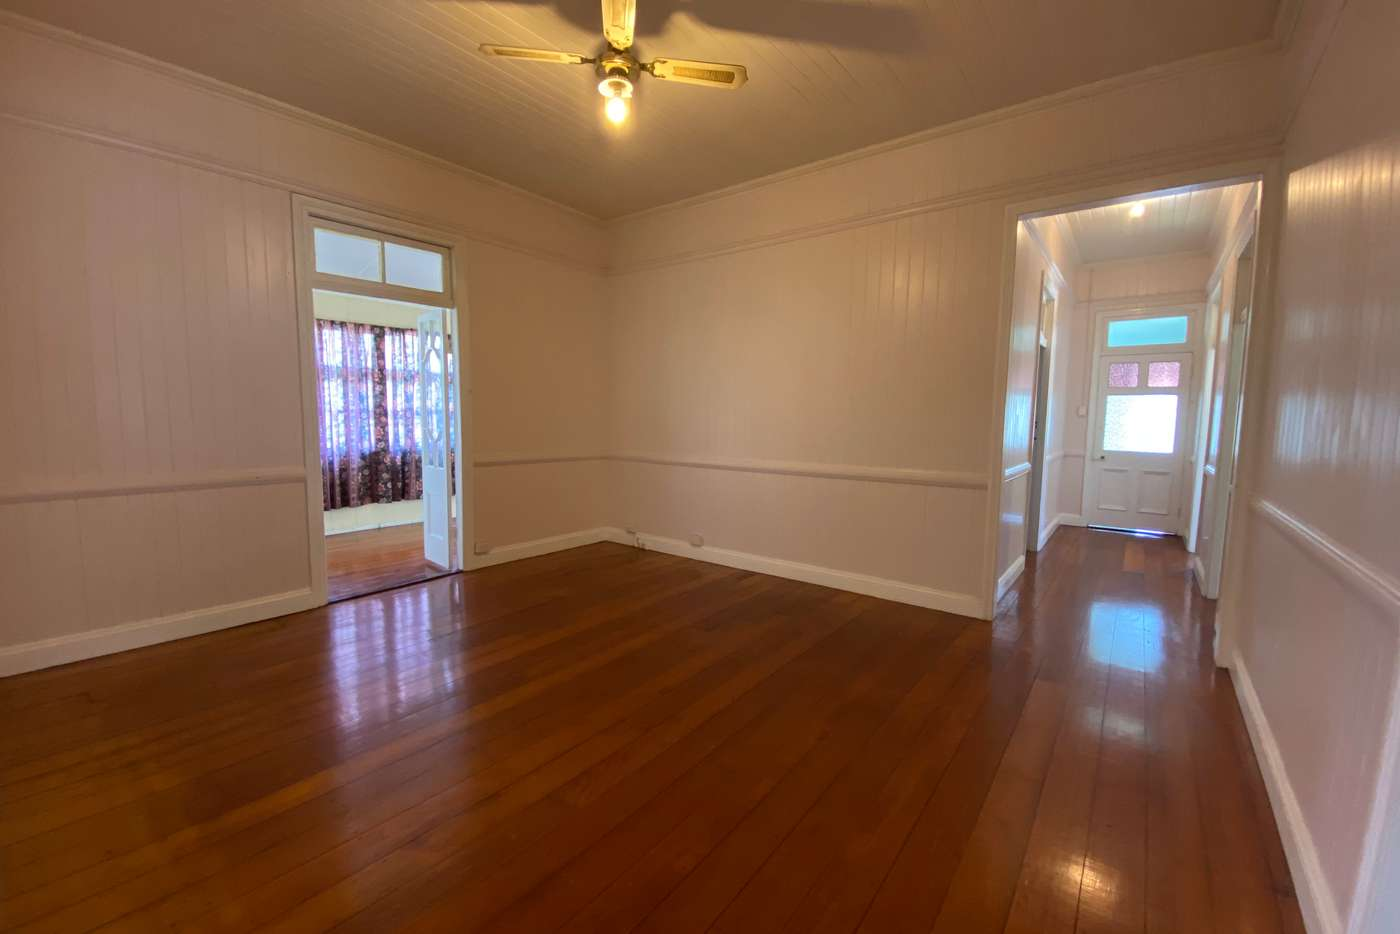 Main view of Homely house listing, 14 Lackey Avenue, Coorparoo QLD 4151